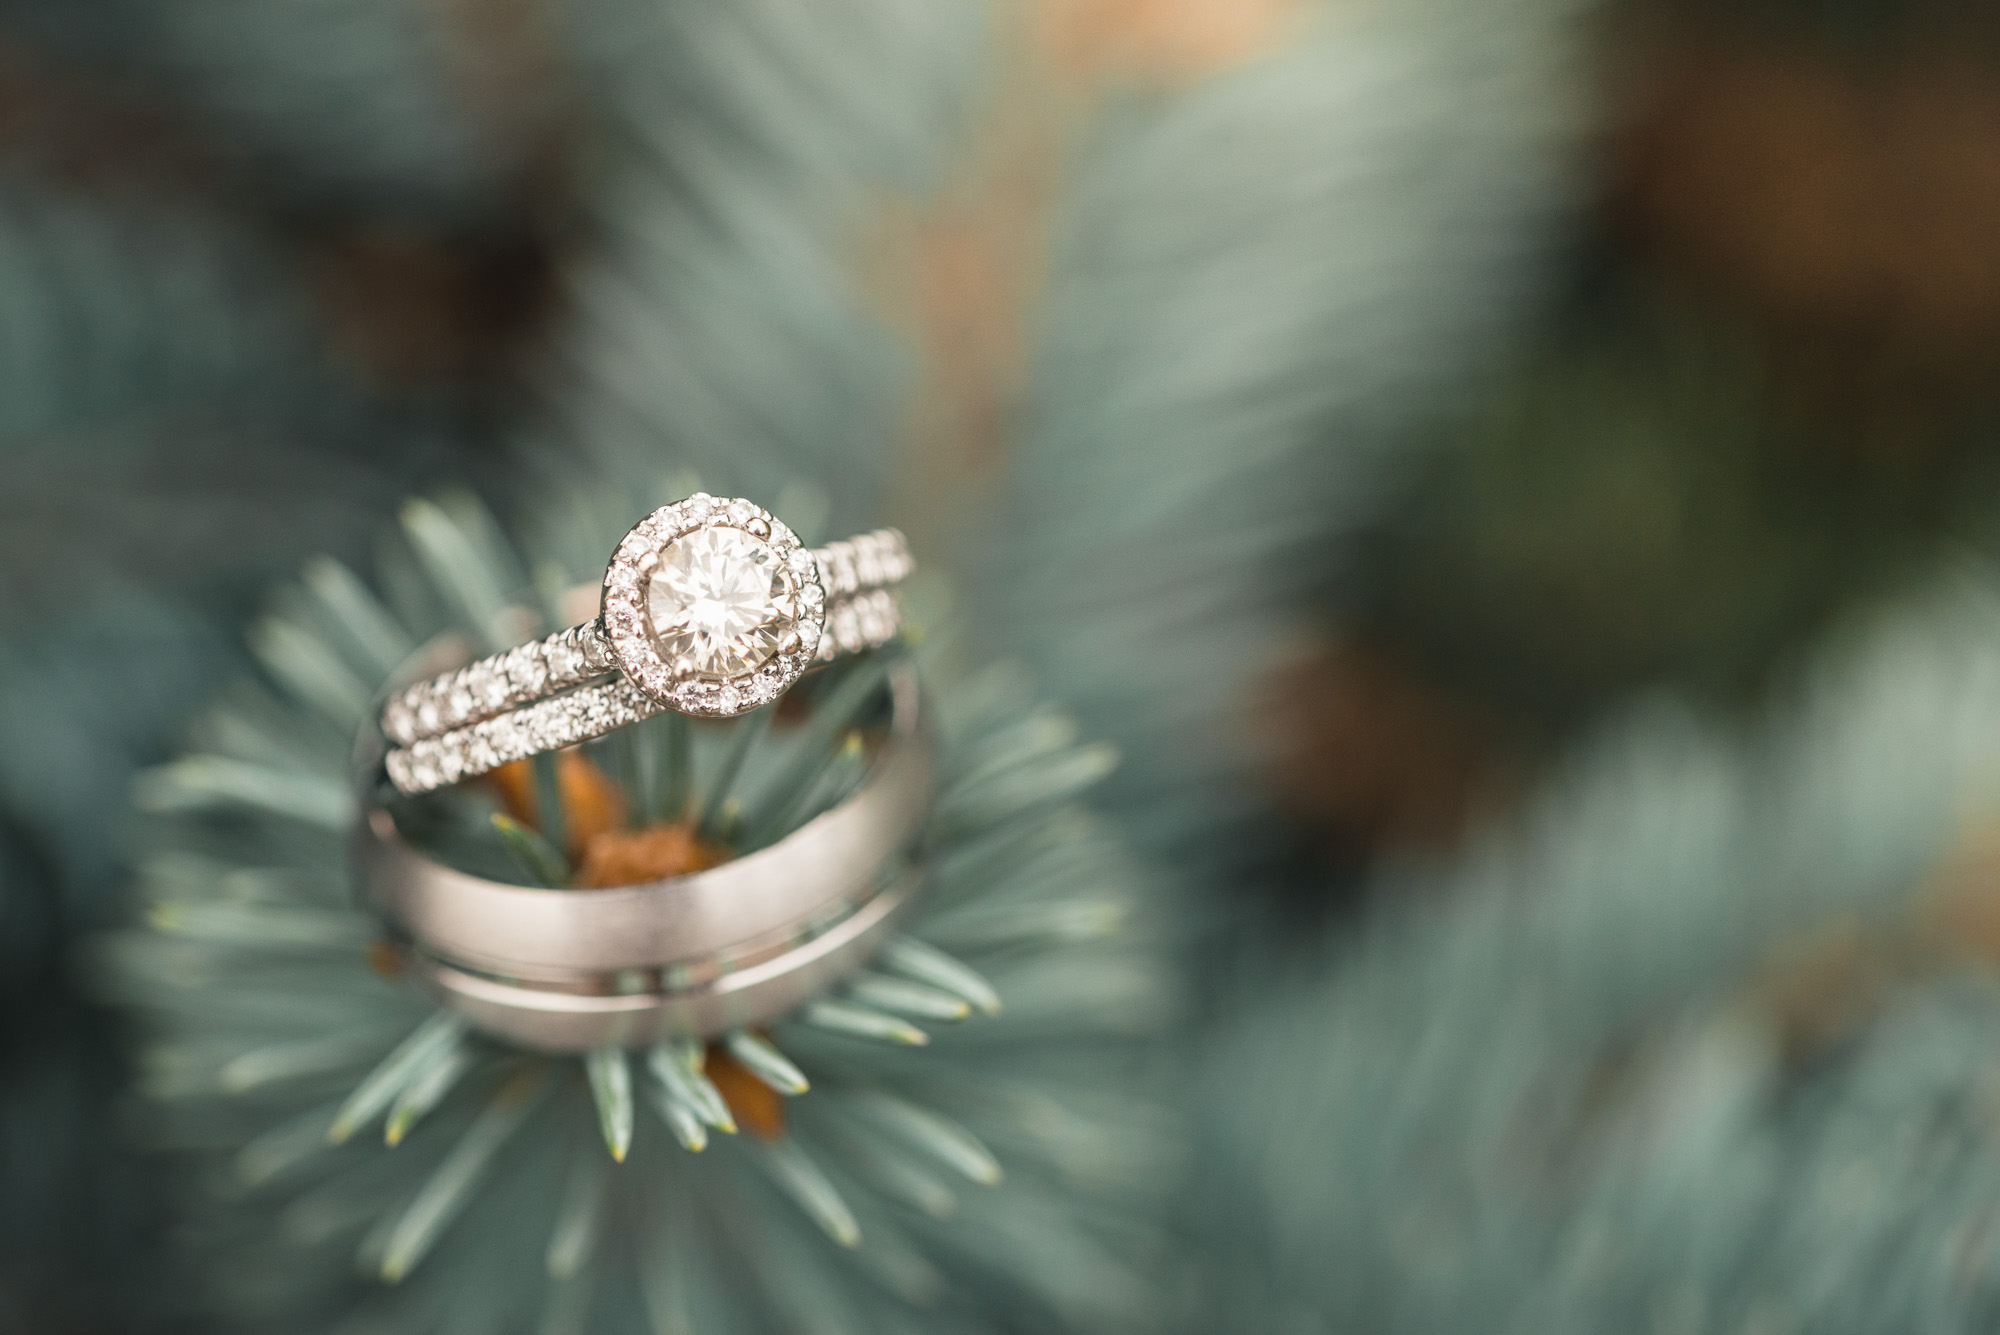 White gold ring details on blue spruce